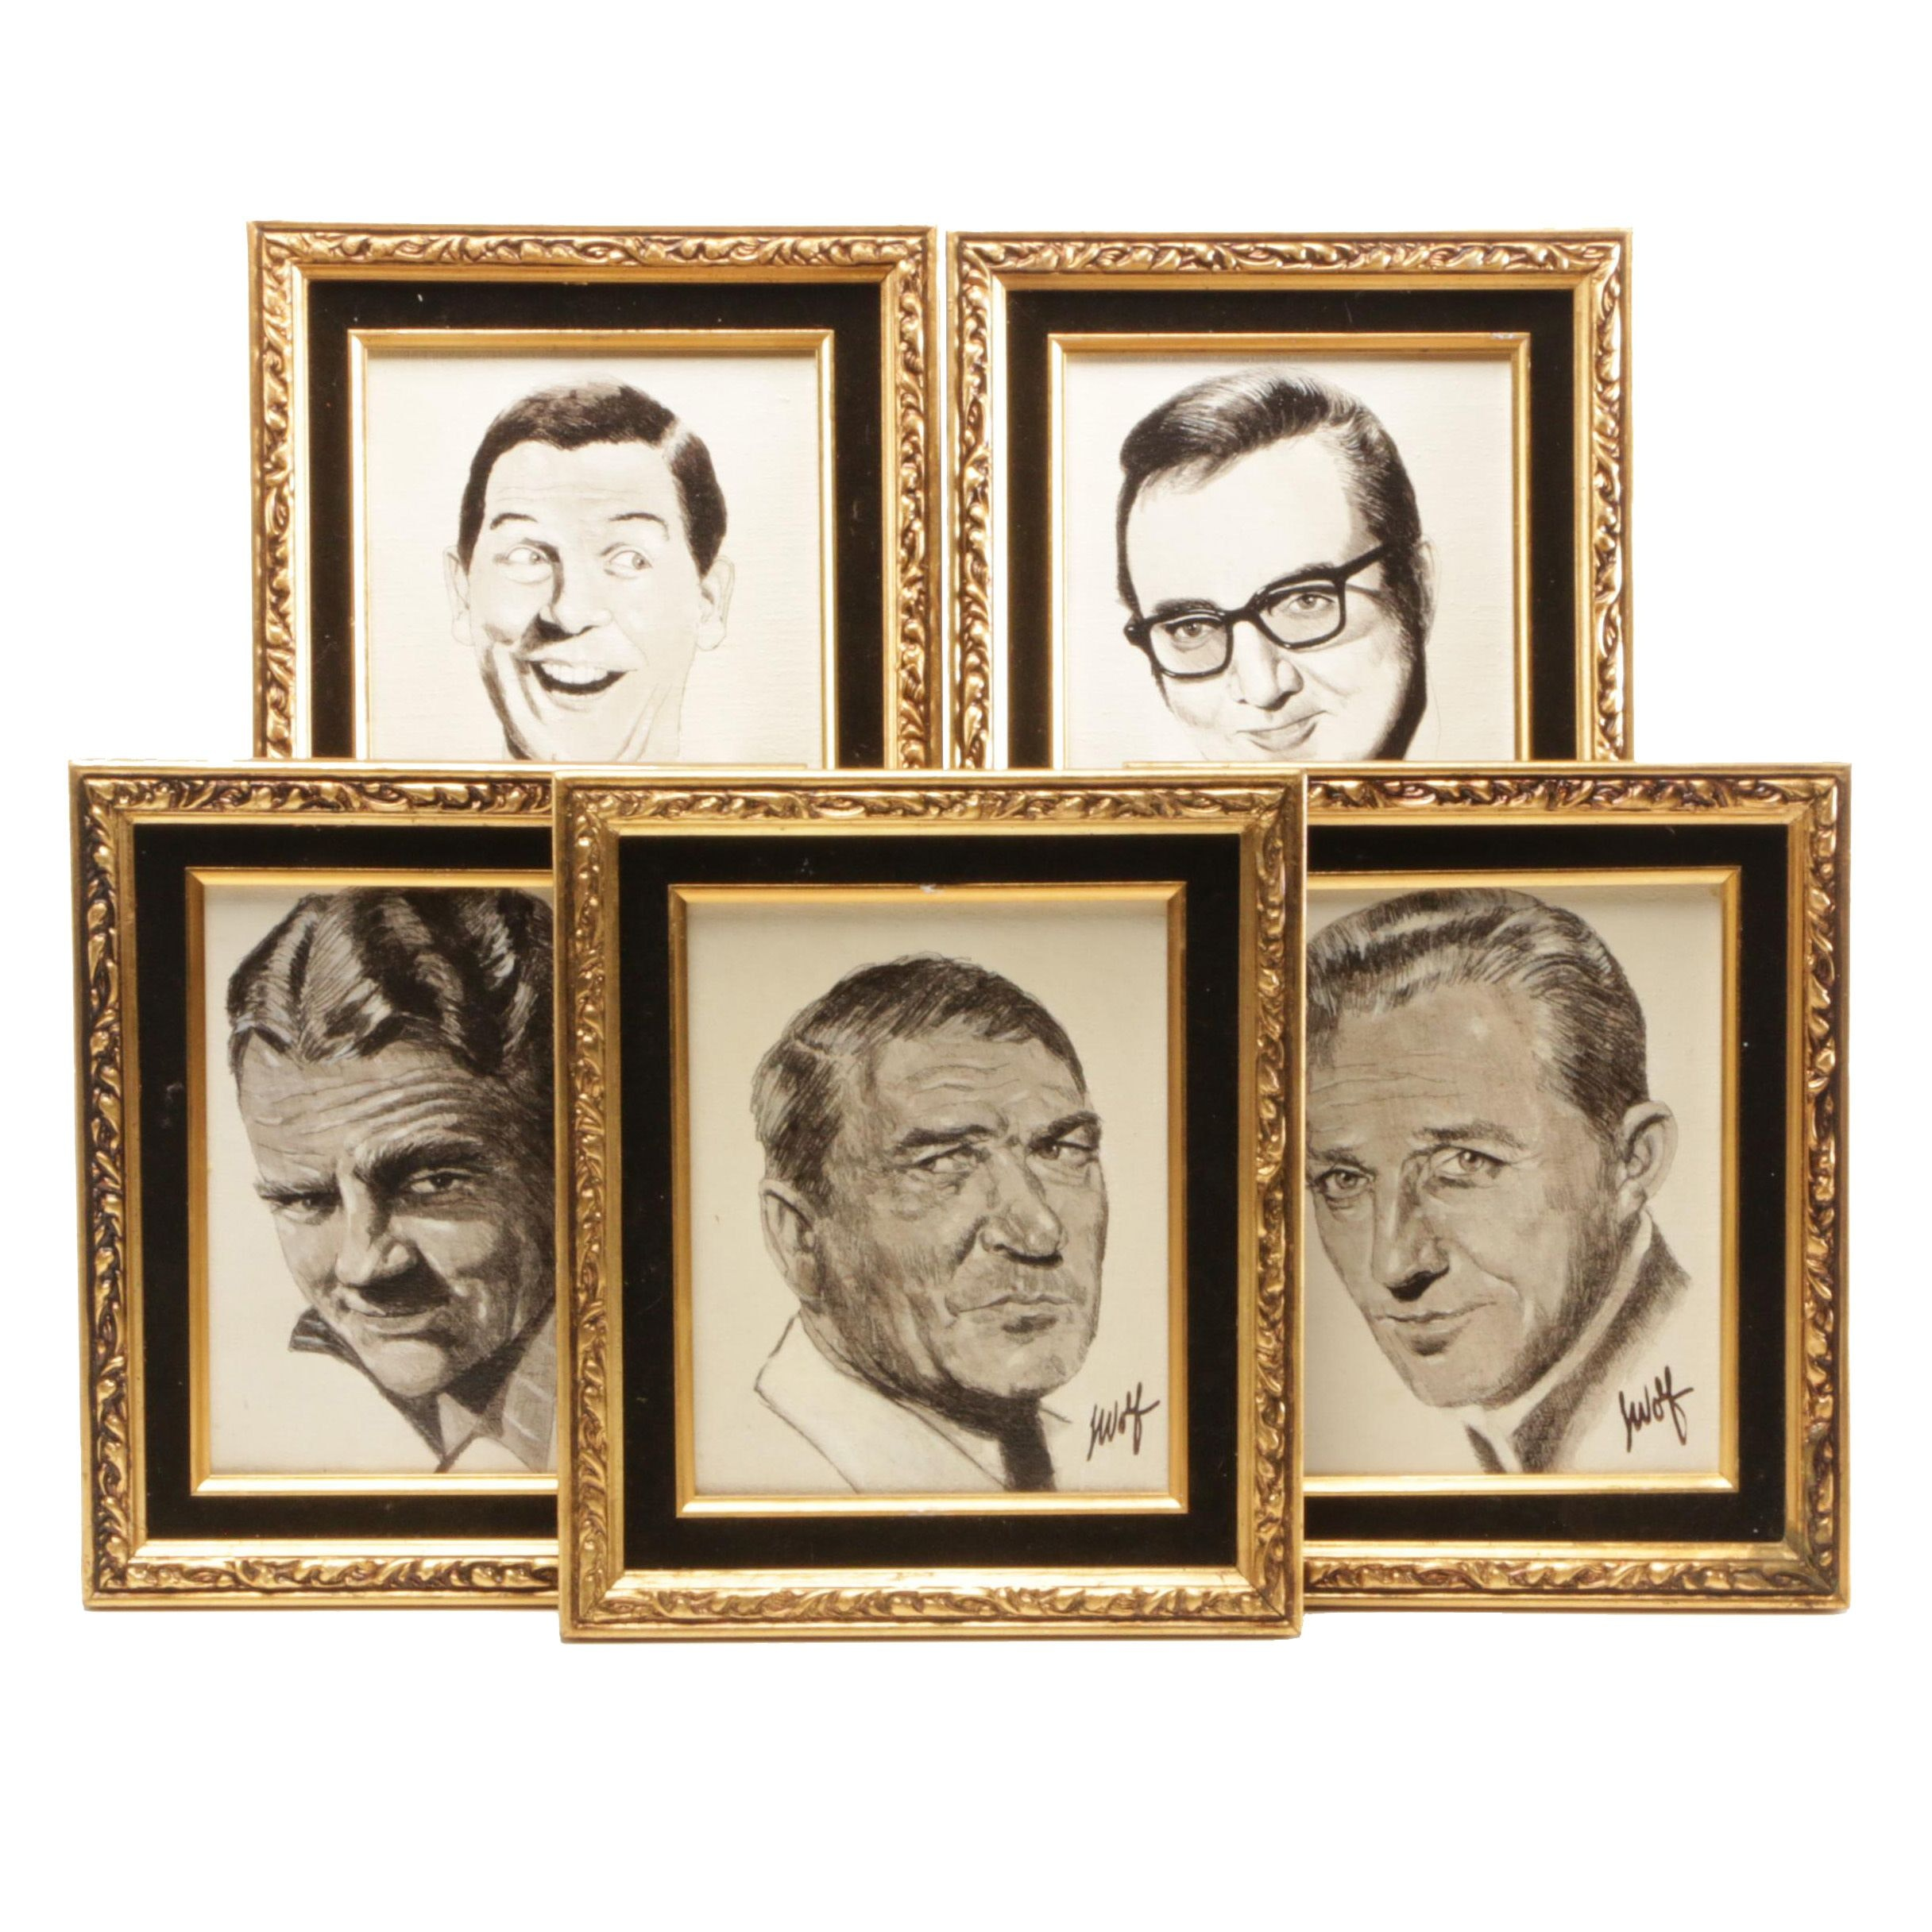 Mid 20th Century Acrylic Paintings featuring 1960s American Actors and Comedians